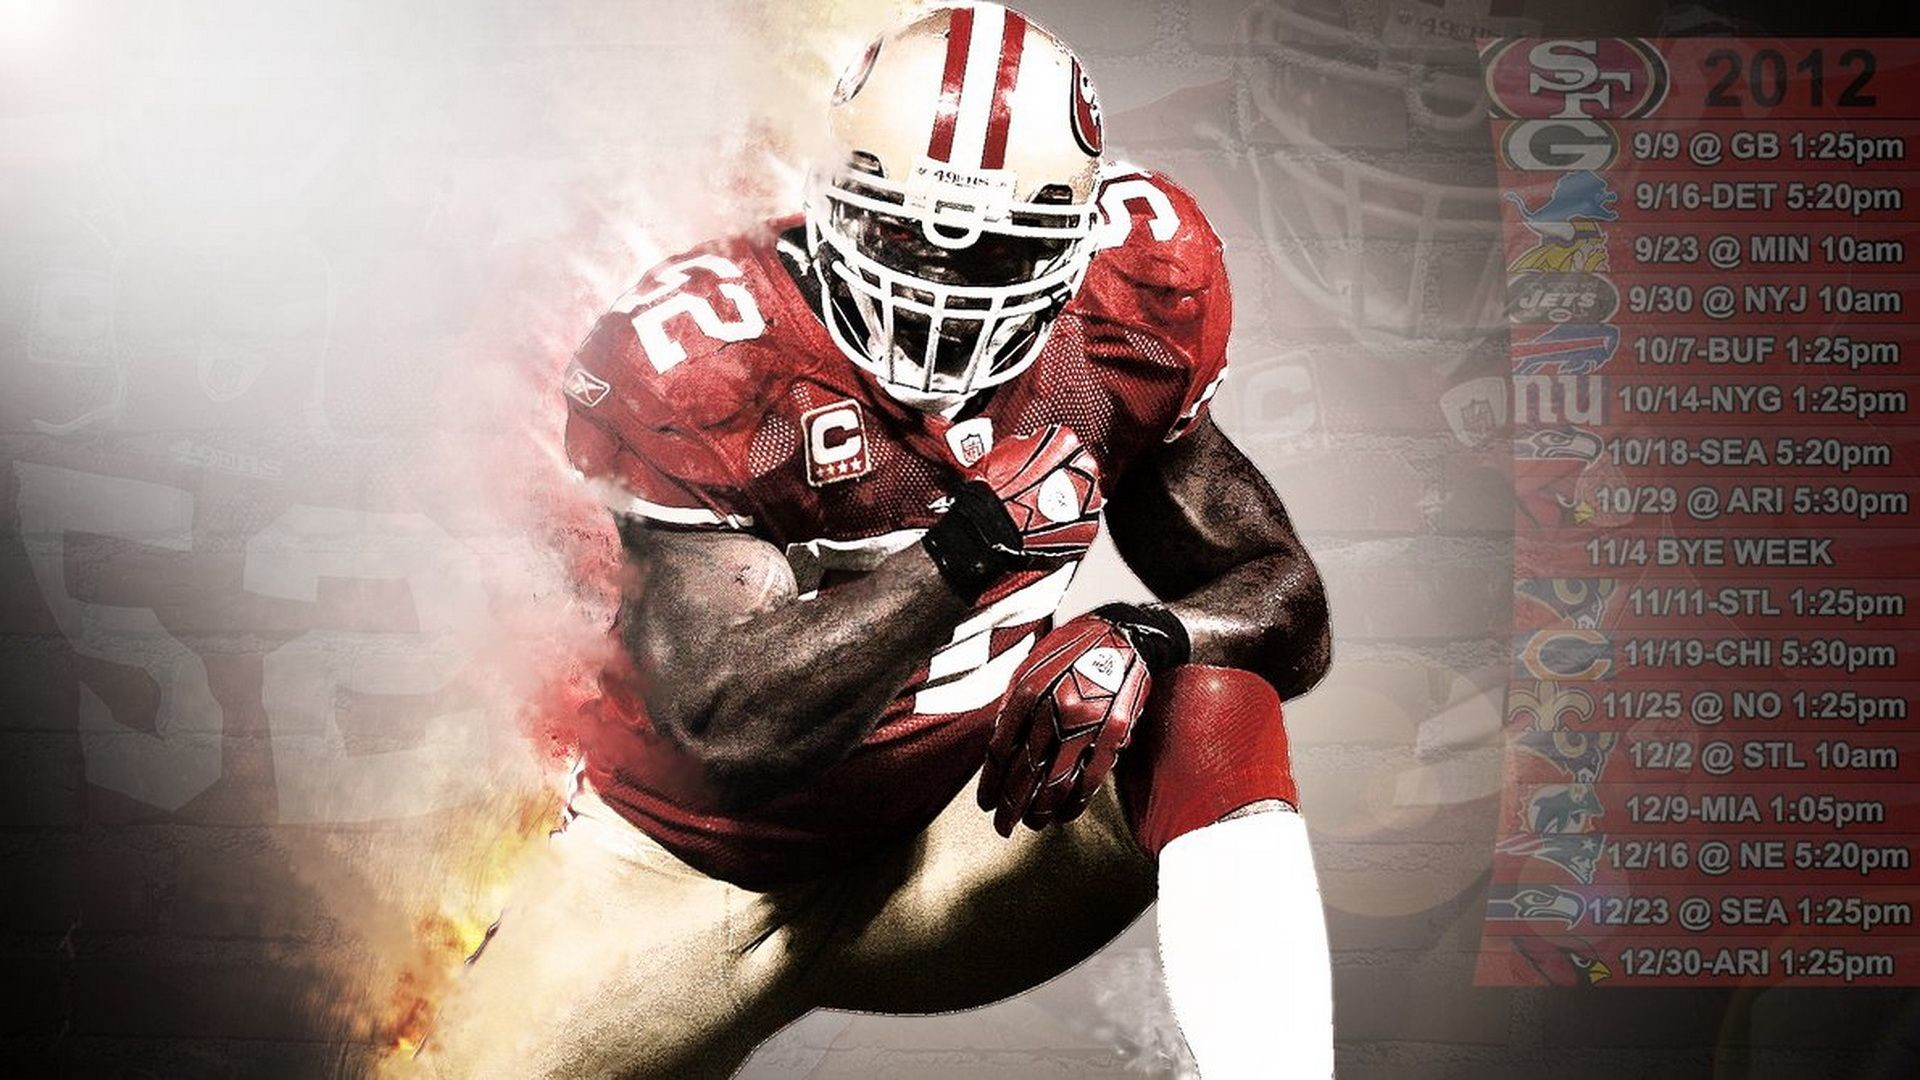 NFL Players. Widescreen Wallpapers …